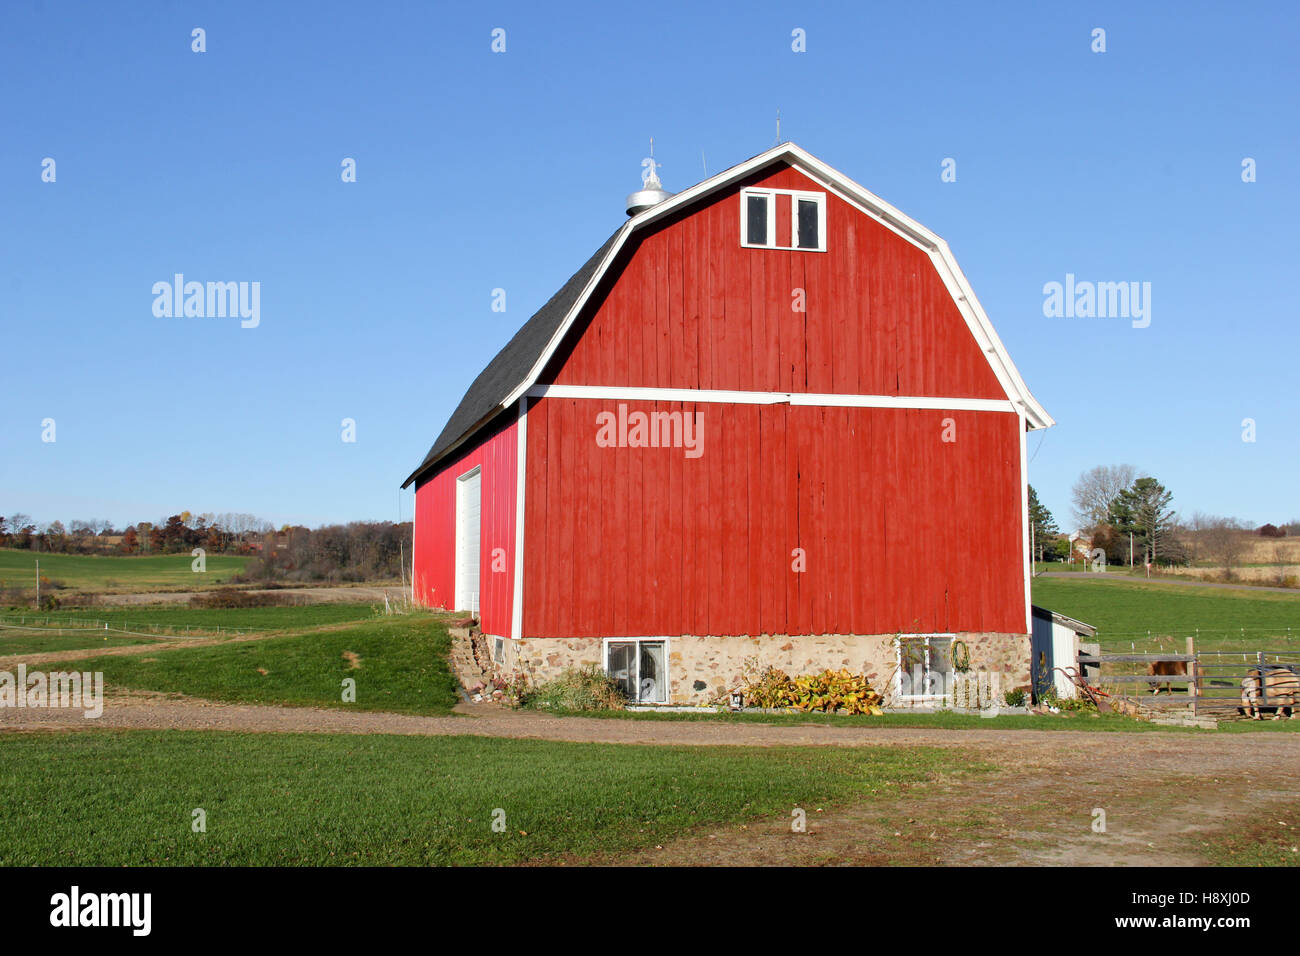 Red wooden barn on a Wisconsin farm with green grass and blue sky in the background - Stock Image